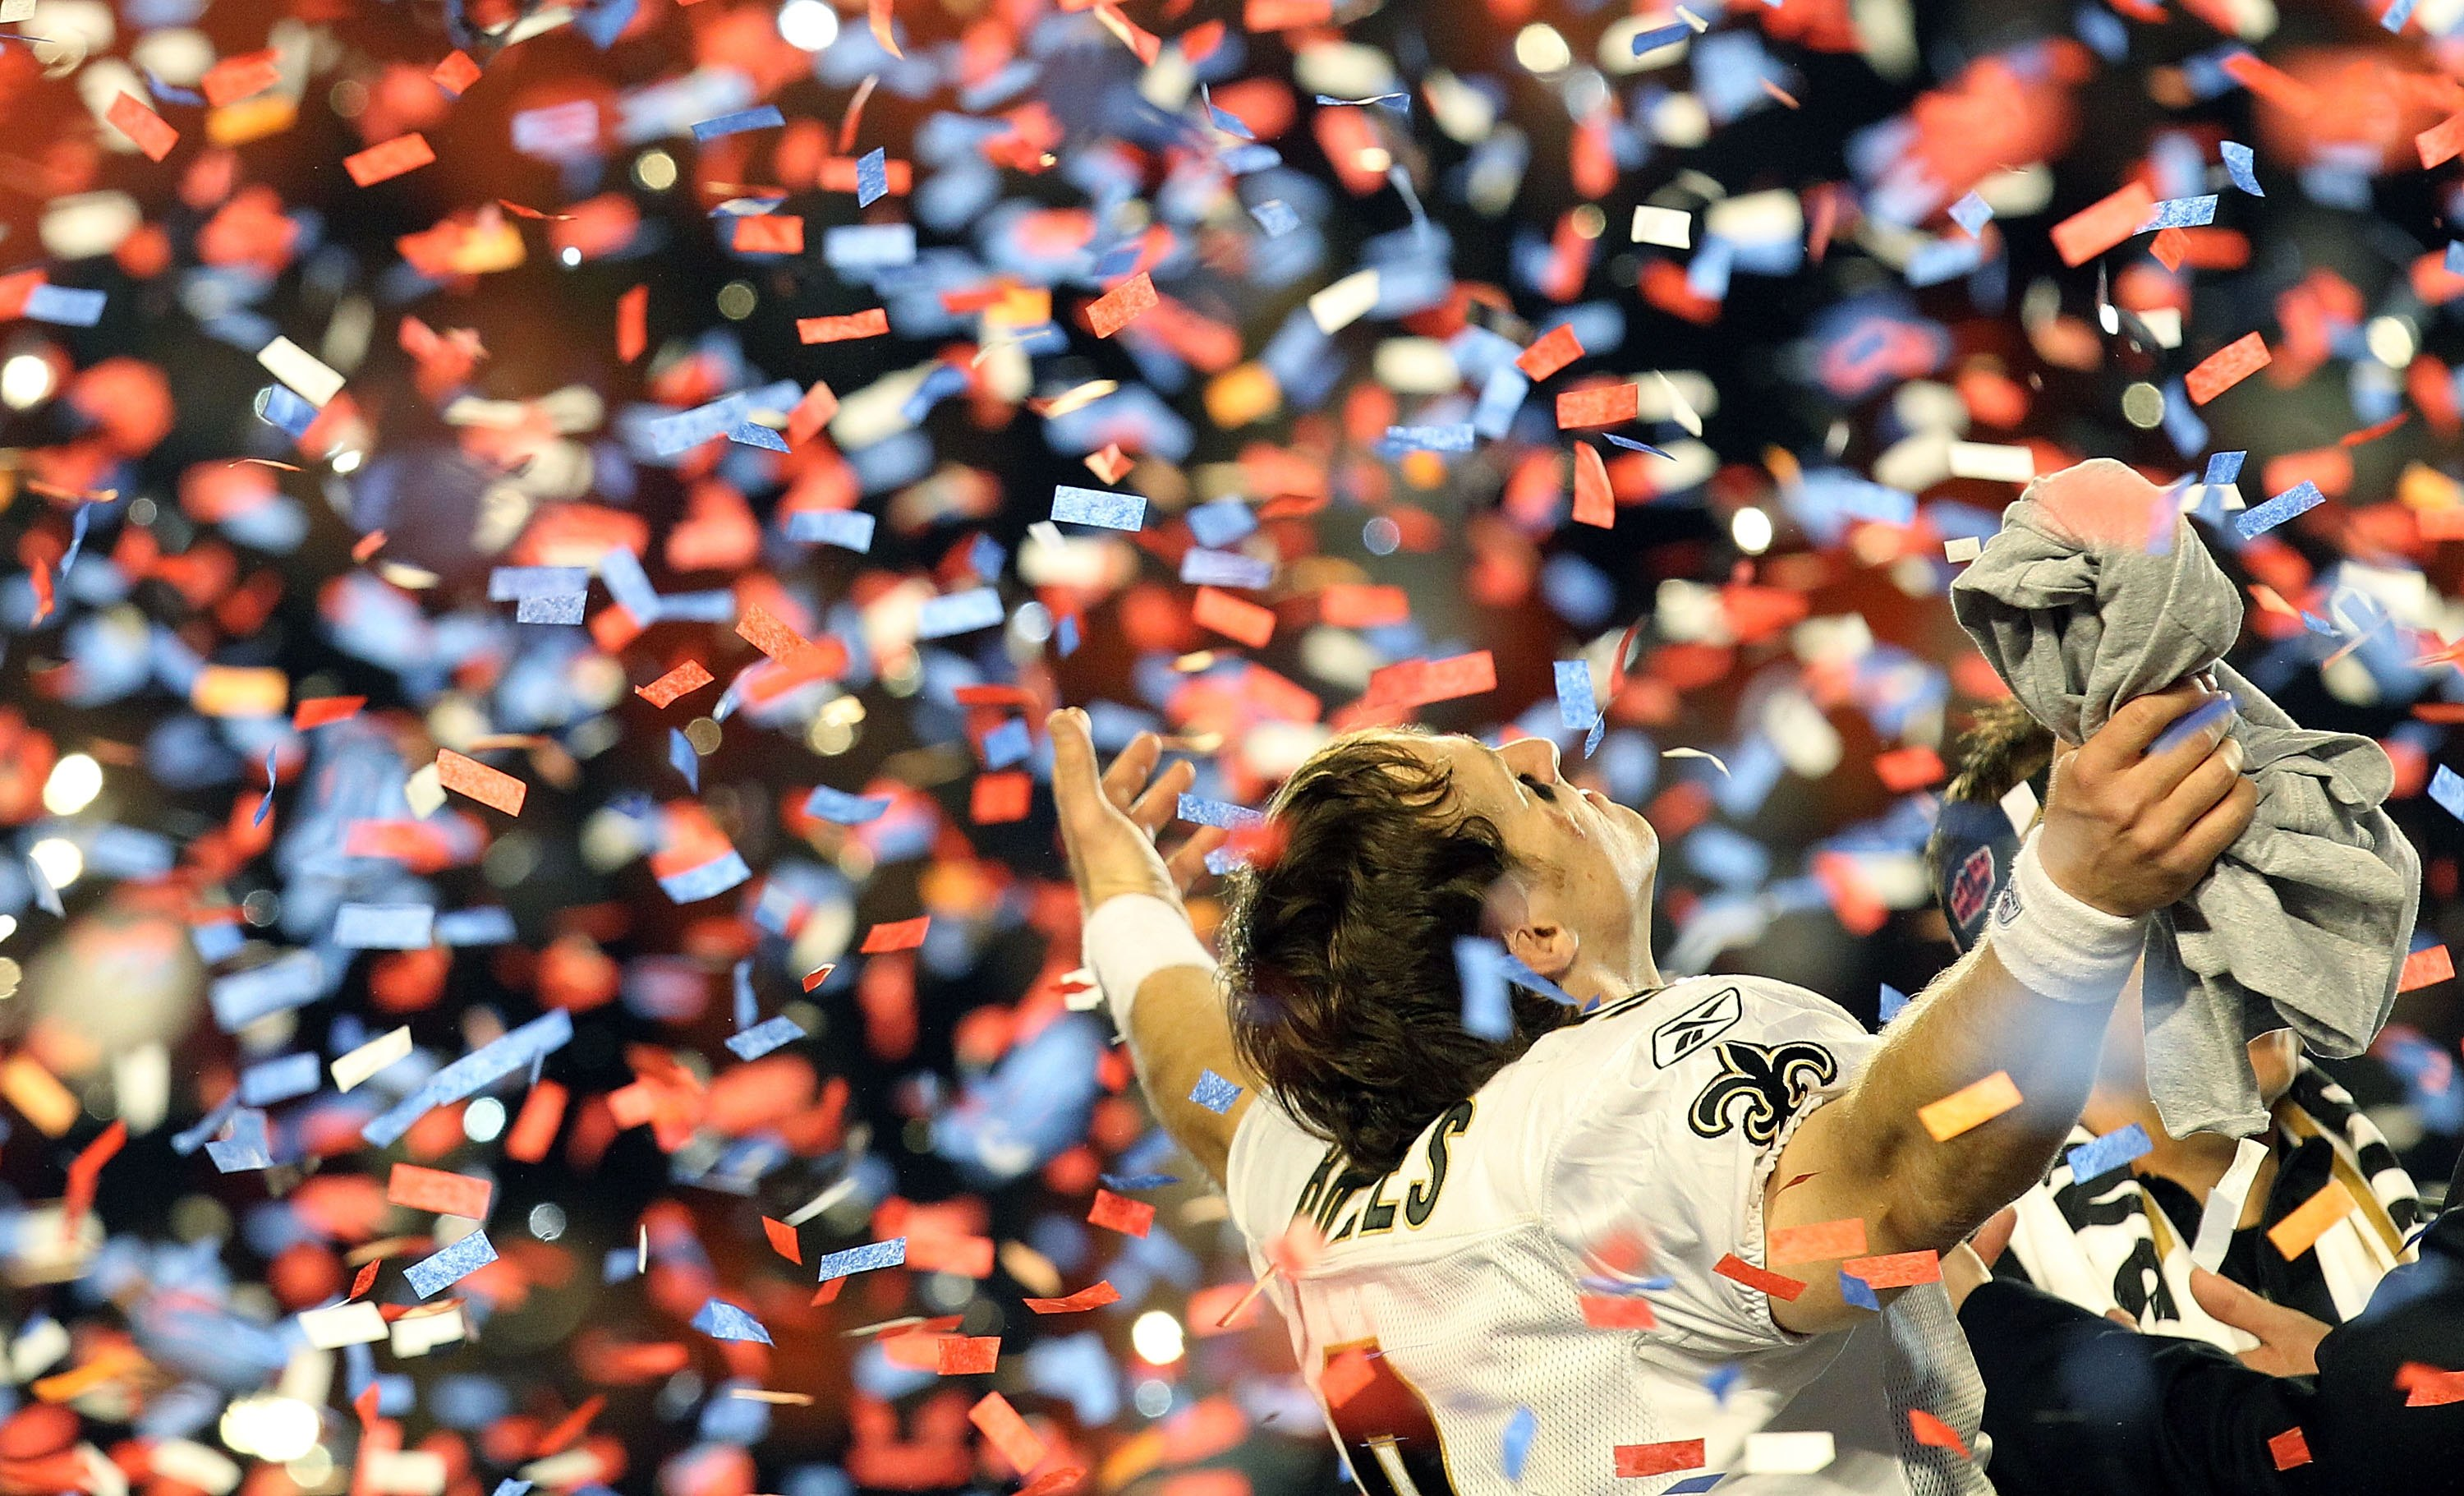 Drew Brees celebrates after the New Orleans Saints defeat the Indianapolis Colts 31-17 in Super Bowl XLIV